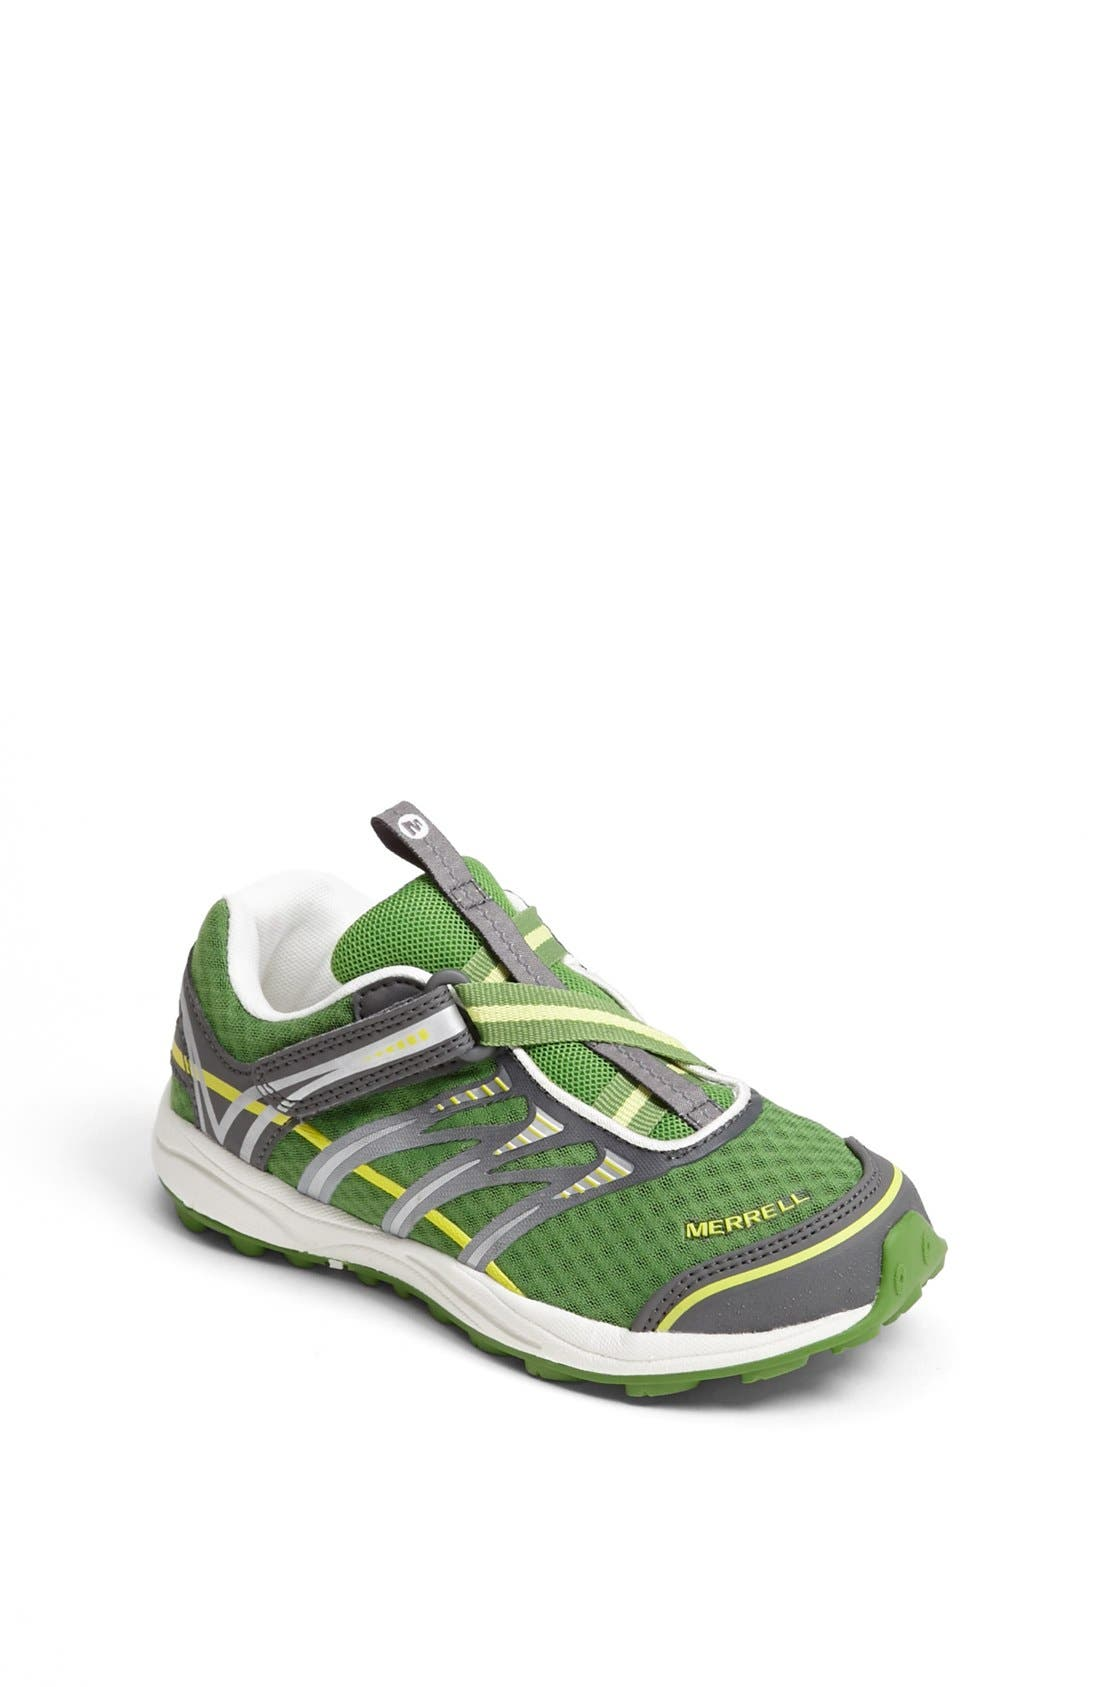 Alternate Image 1 Selected - Merrell 'Mix Master Jam Z-Rap™' Sneaker (Toddler, Little Kid & Big Kid)